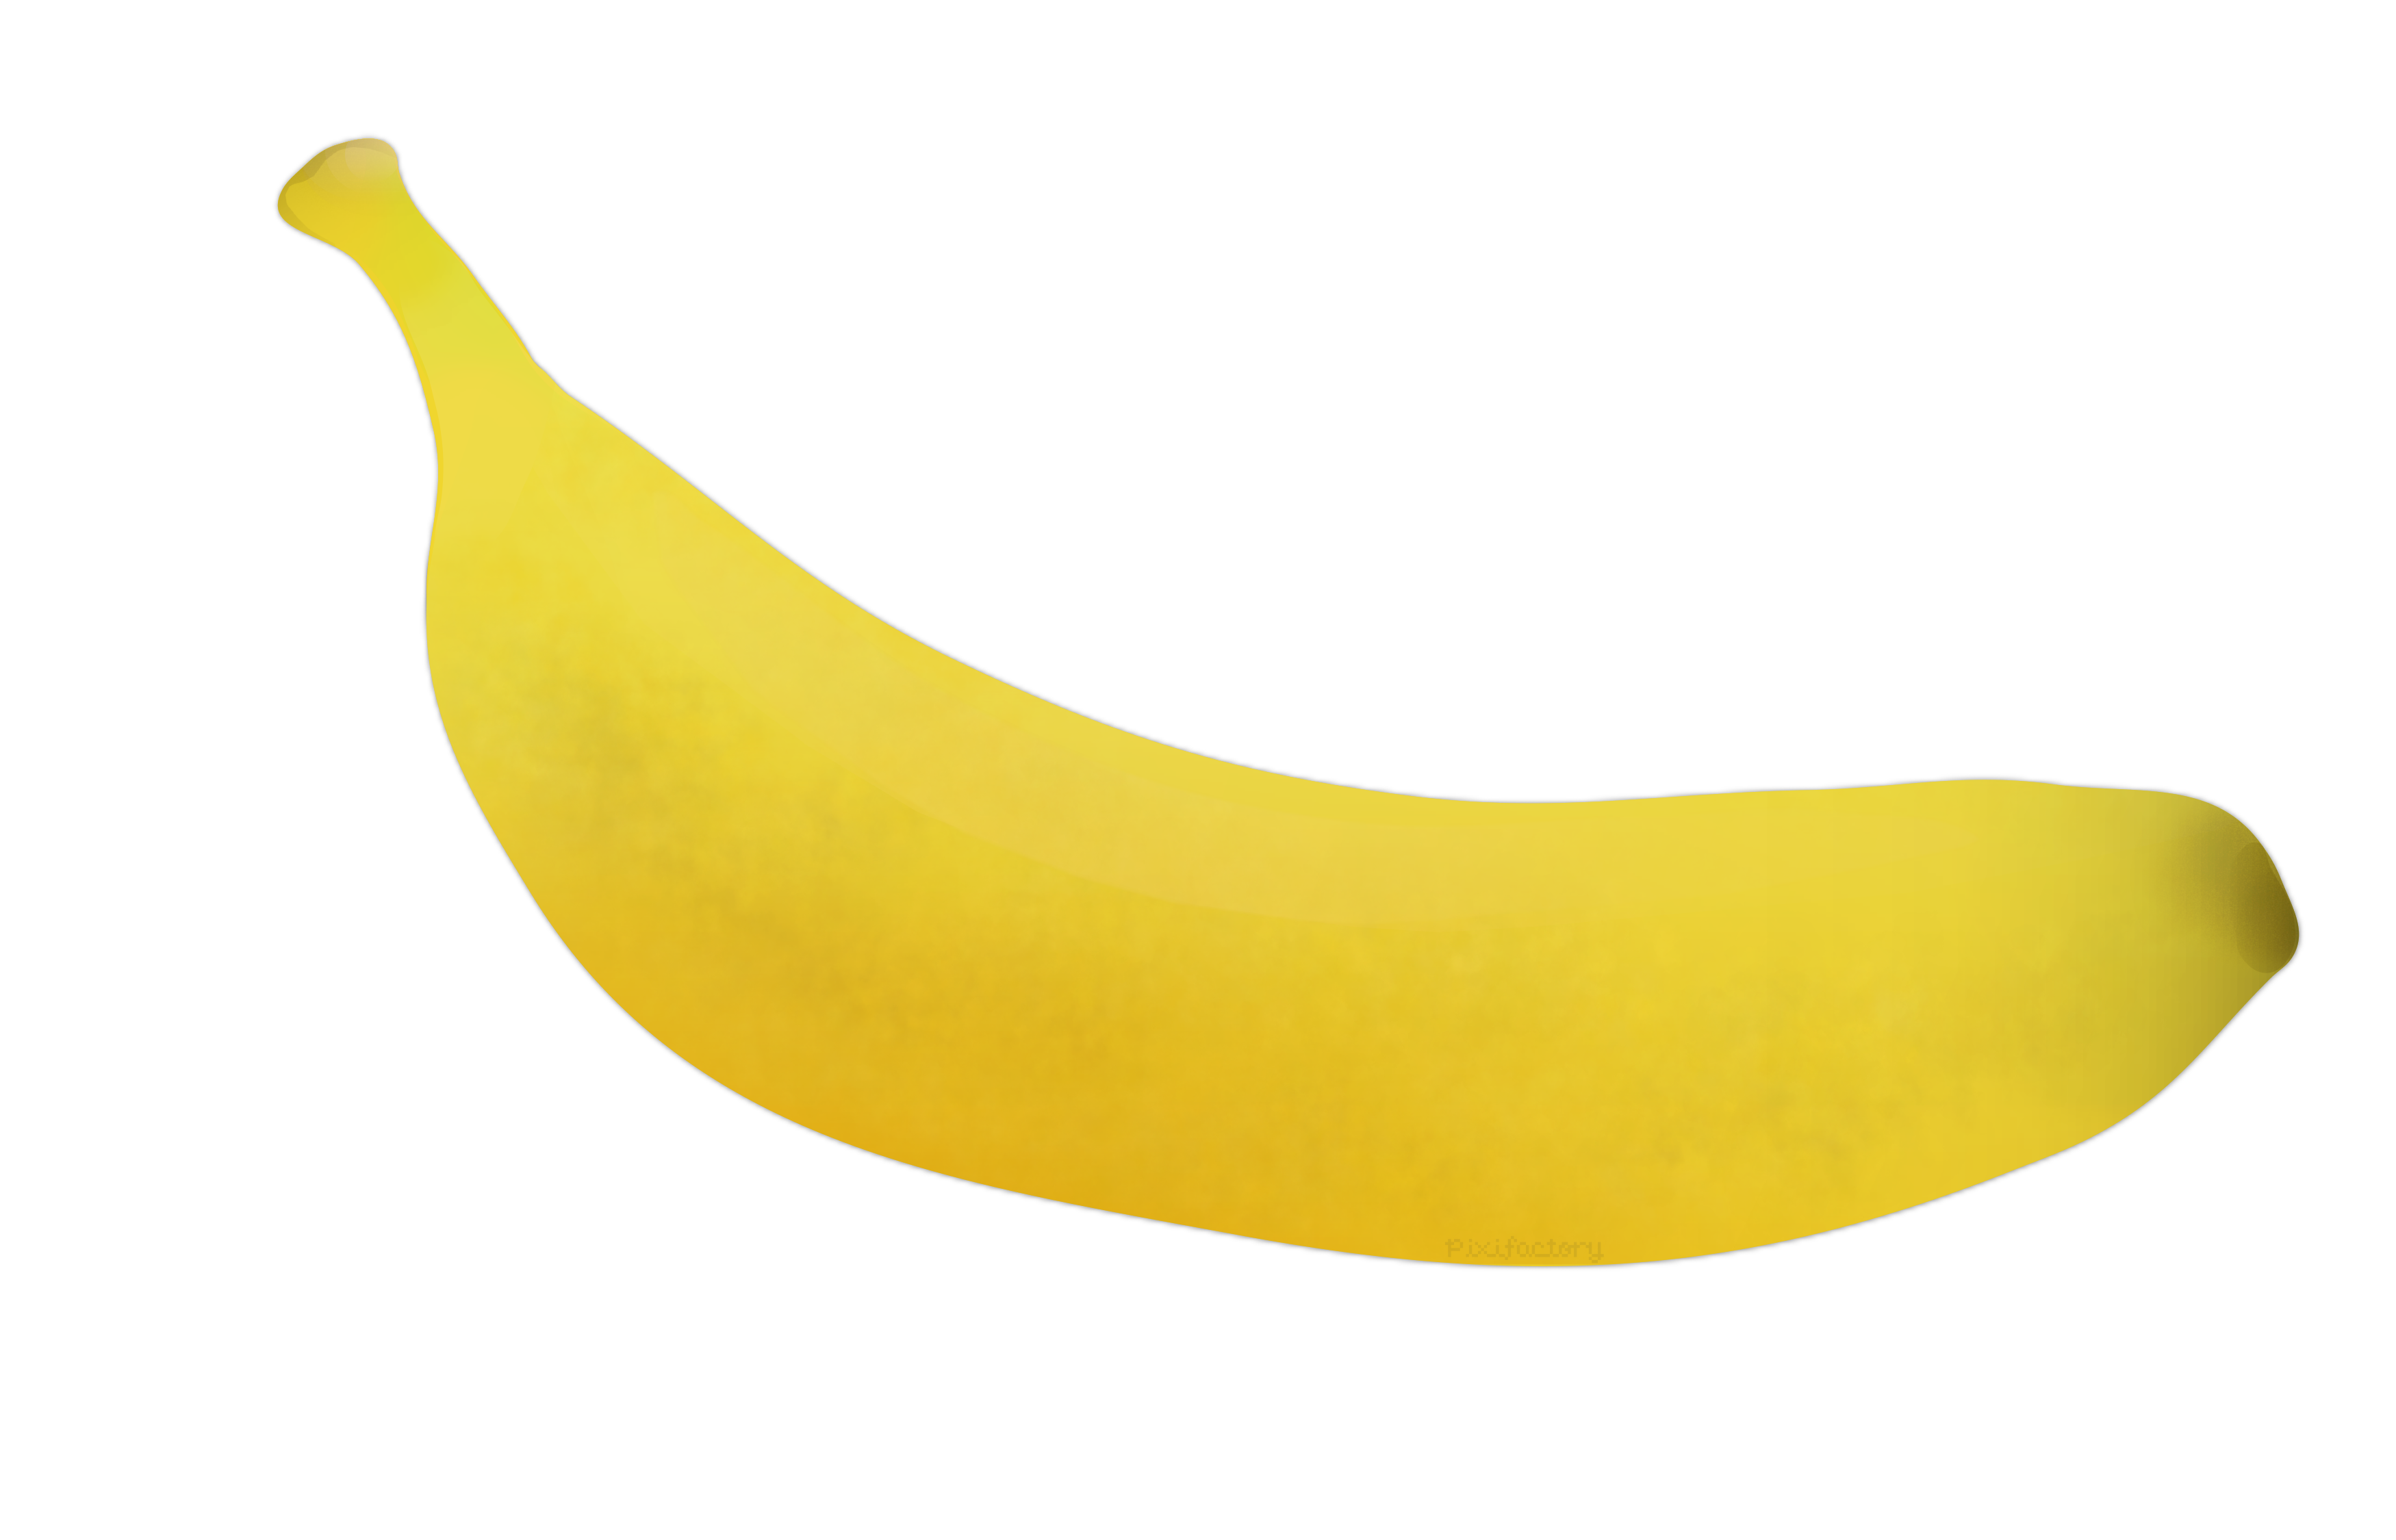 Bananas on png background. Banana image free picture